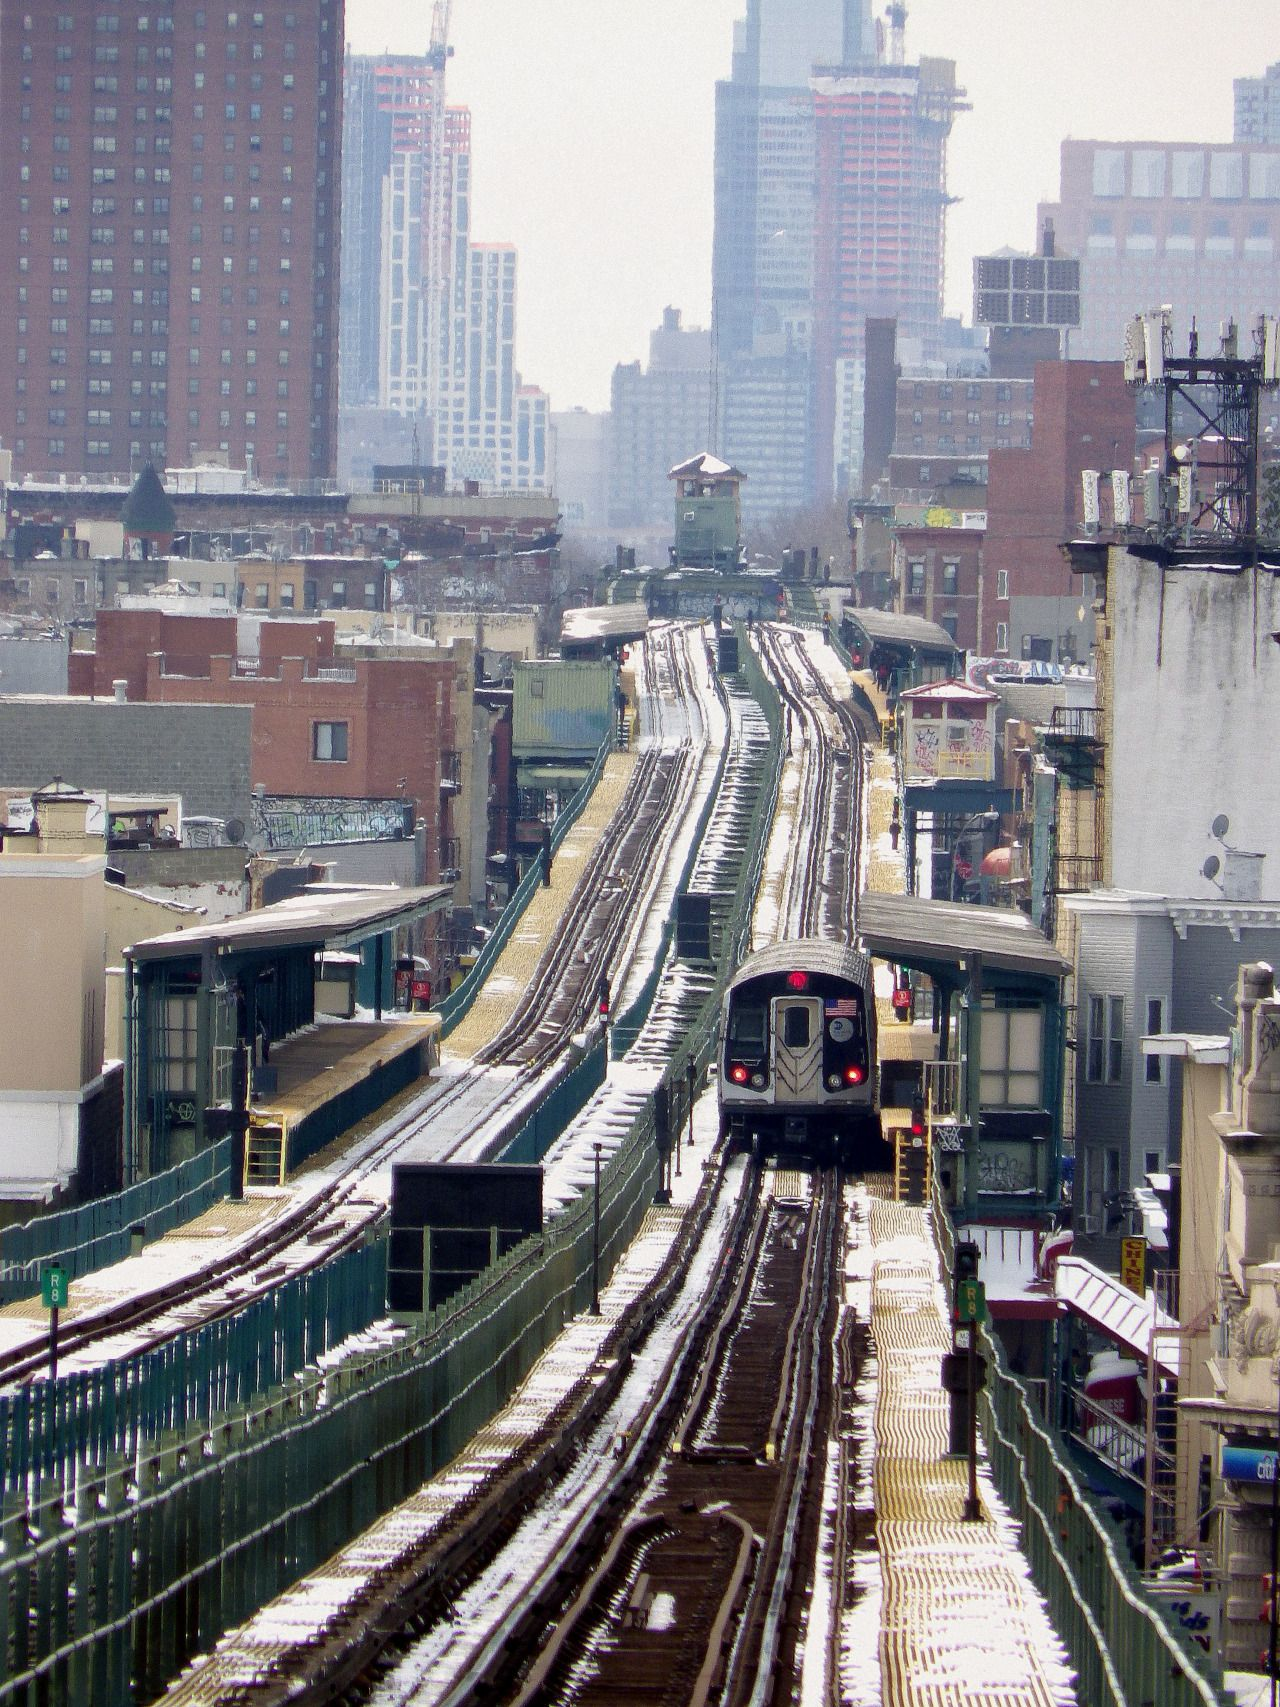 Wandering New York Looking Down The Tracks Of The Myrtle Avenue Line New York Subway Ny Subway Nyc Subway